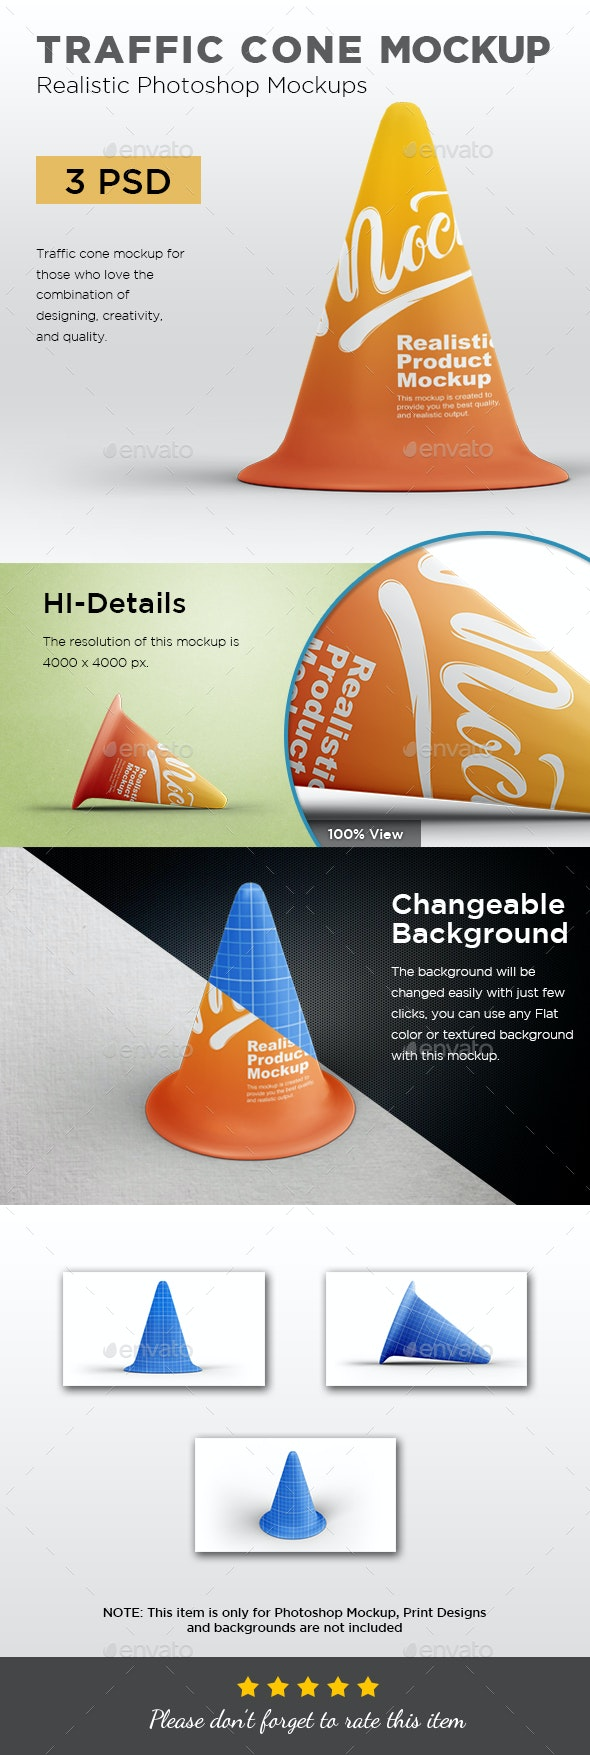 Traffic Cone Mockup - Product Mock-Ups Graphics